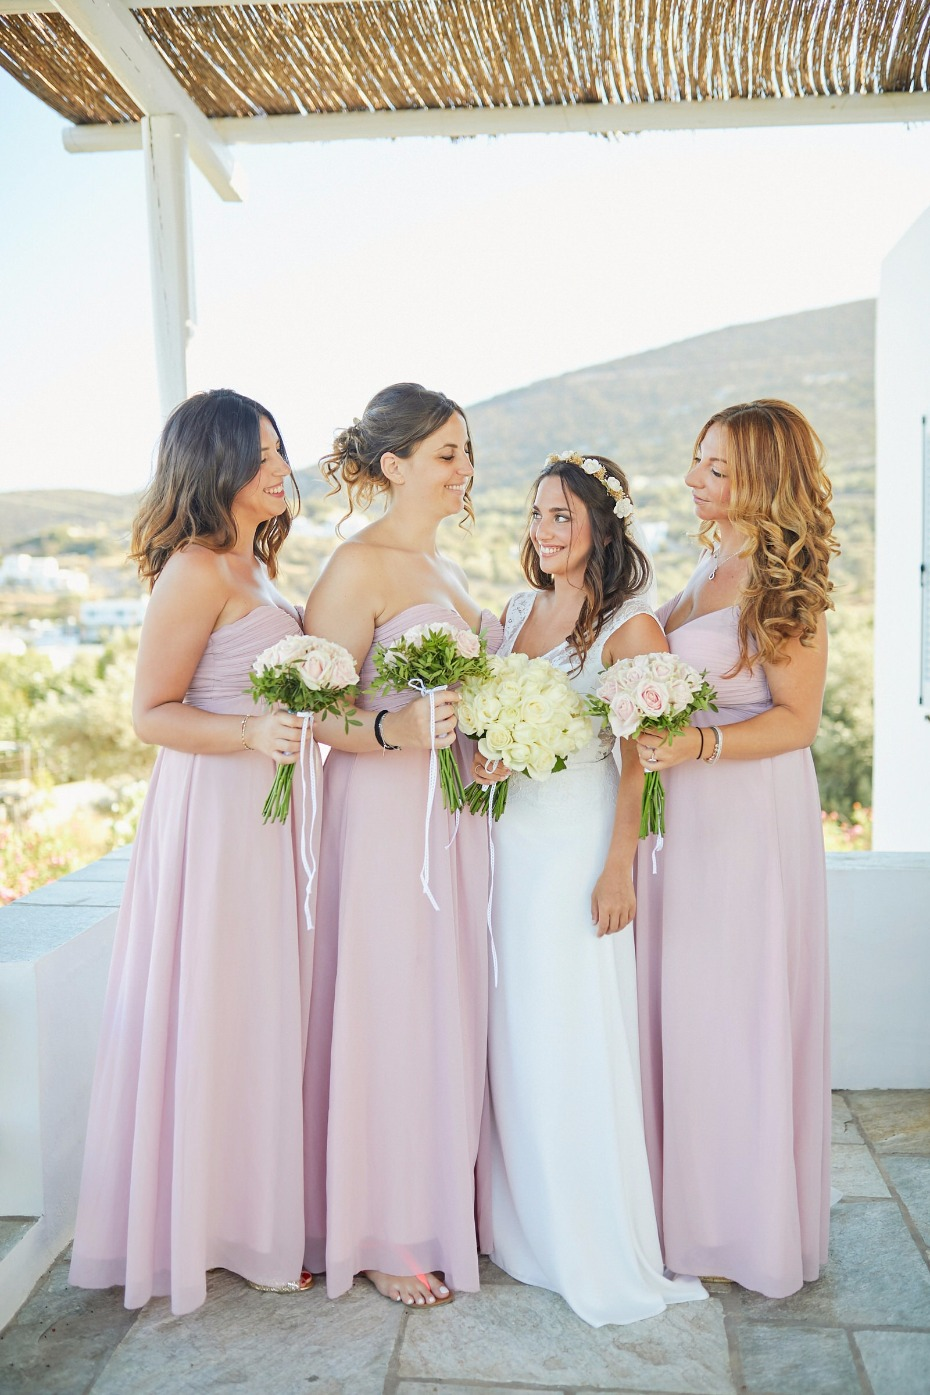 blushing bridesmaids in soft blush dresses